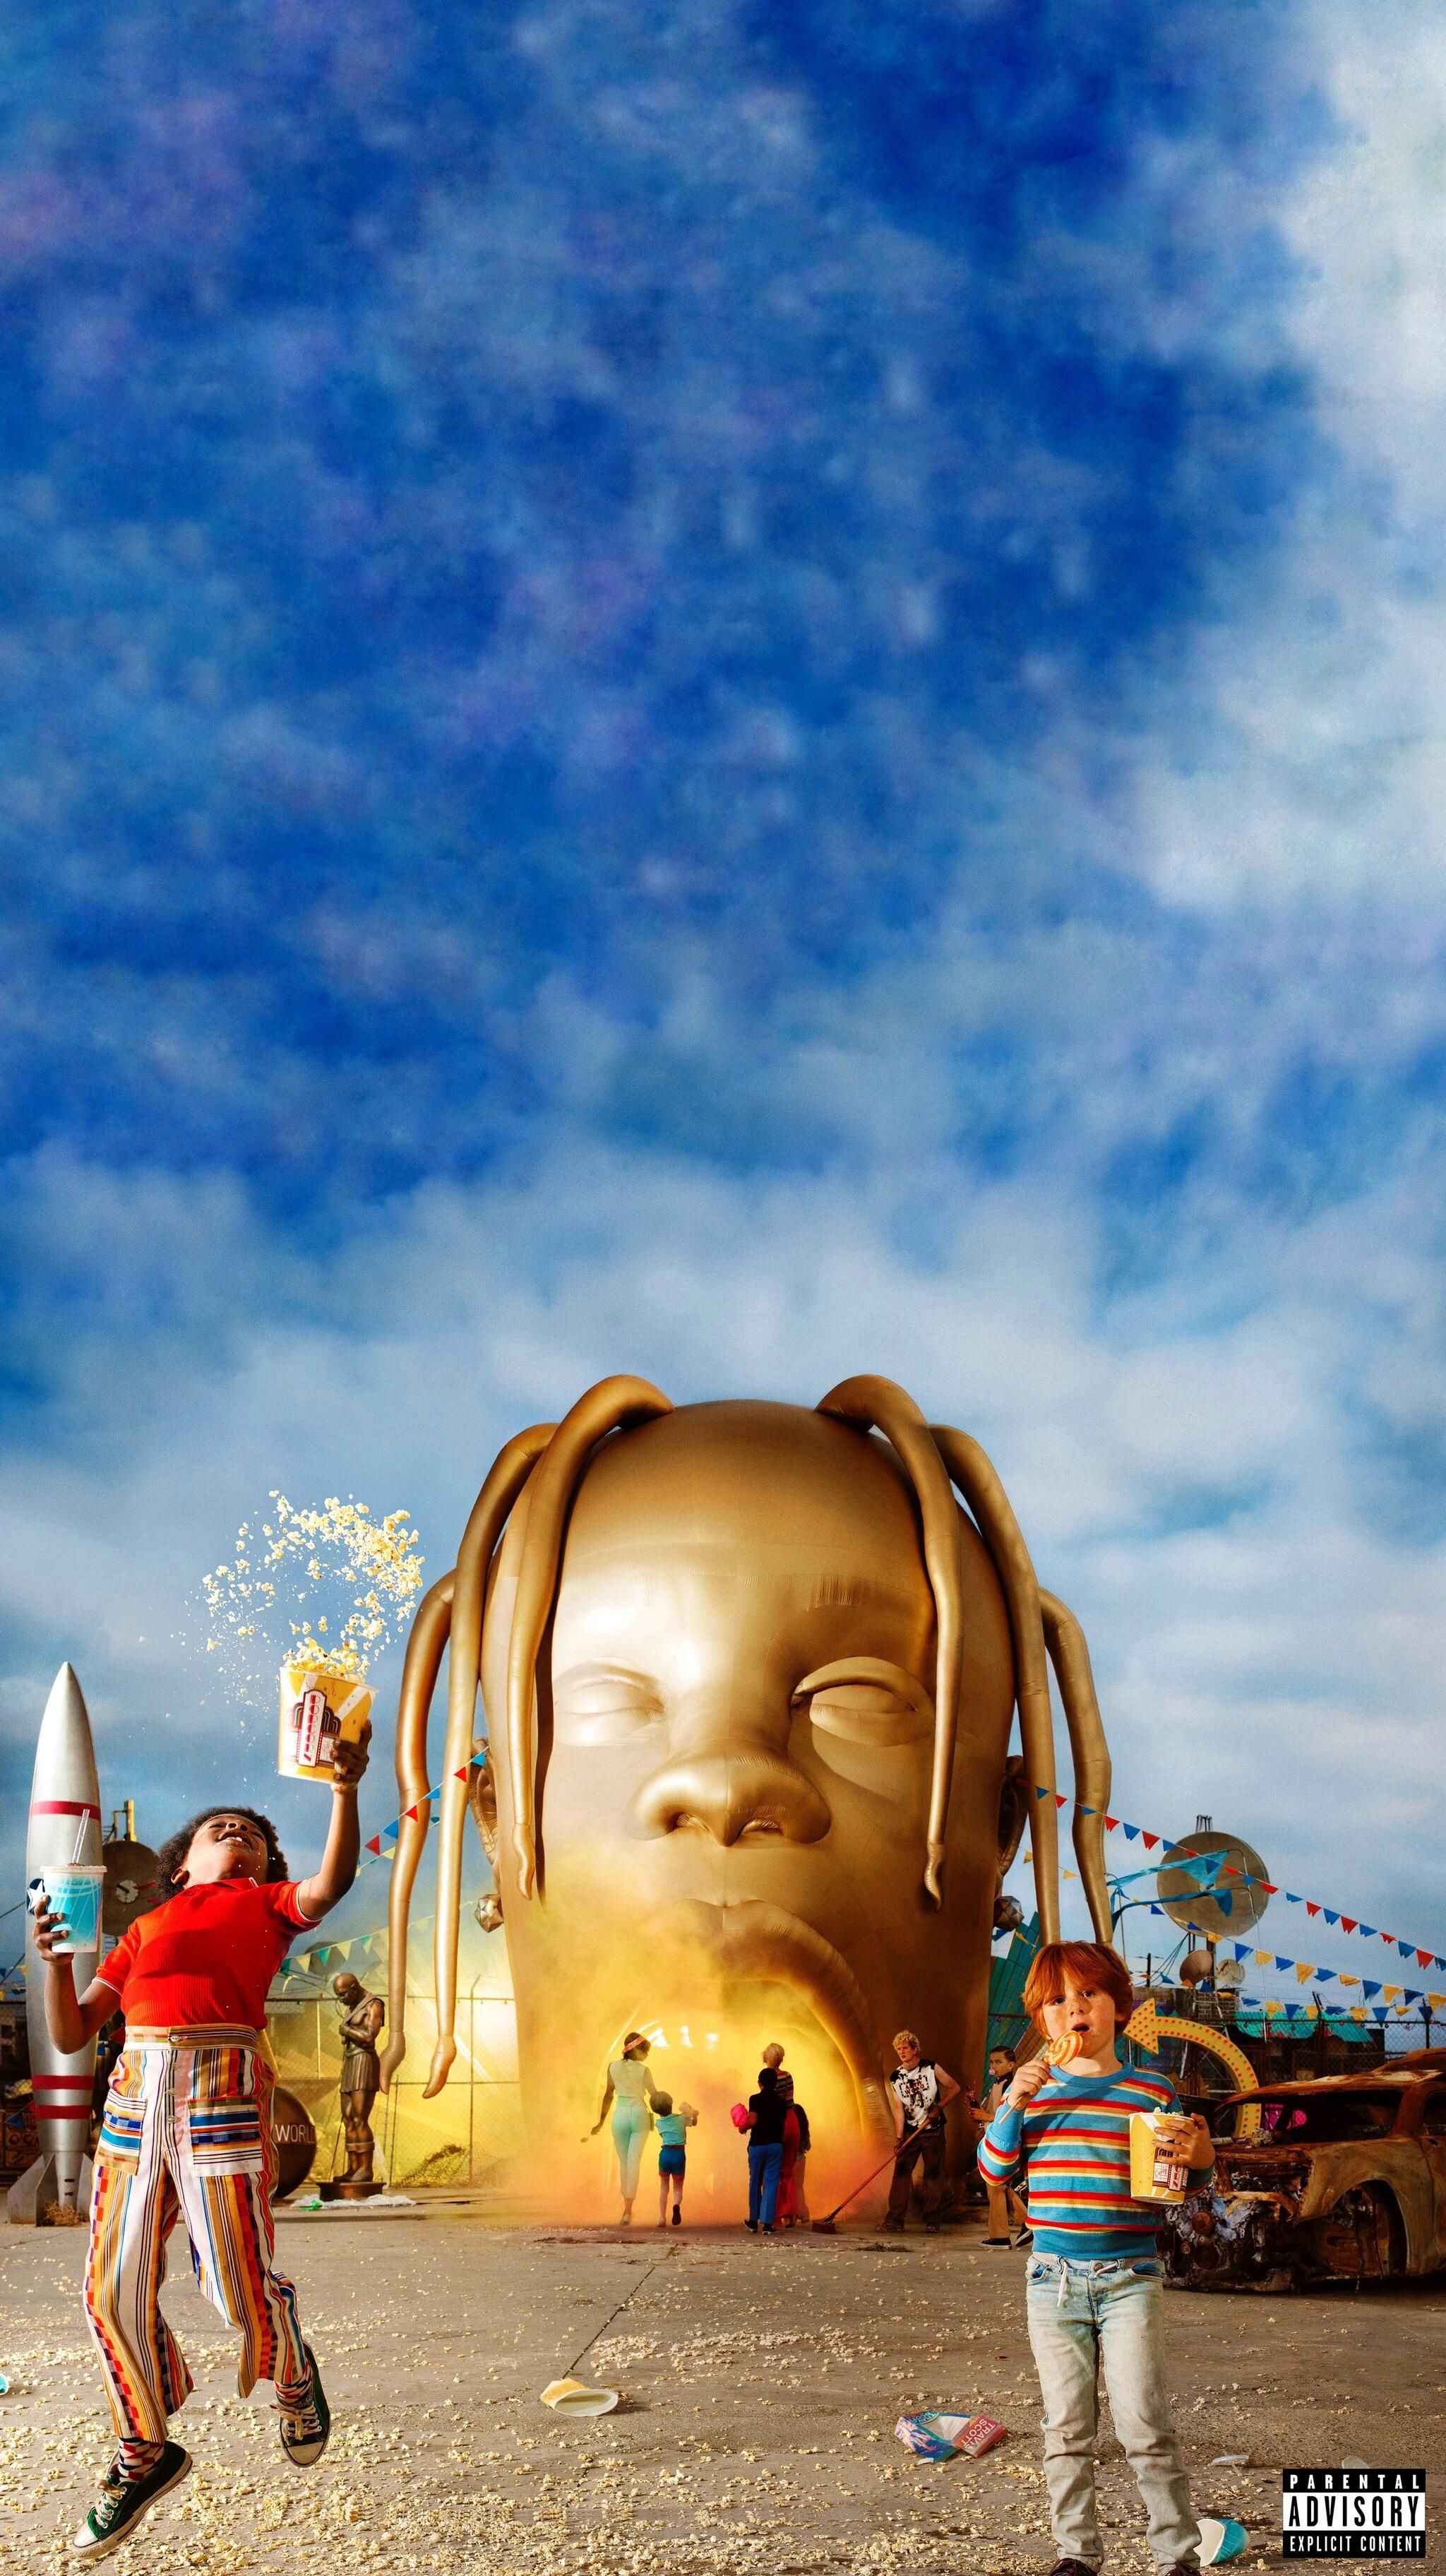 Would Love A Pc Background Of This Astroworld Cover 1920x1080 Need Trendy I Papeis De Parede Para Iphone Imagem De Fundo Para Iphone Papel De Parede Android